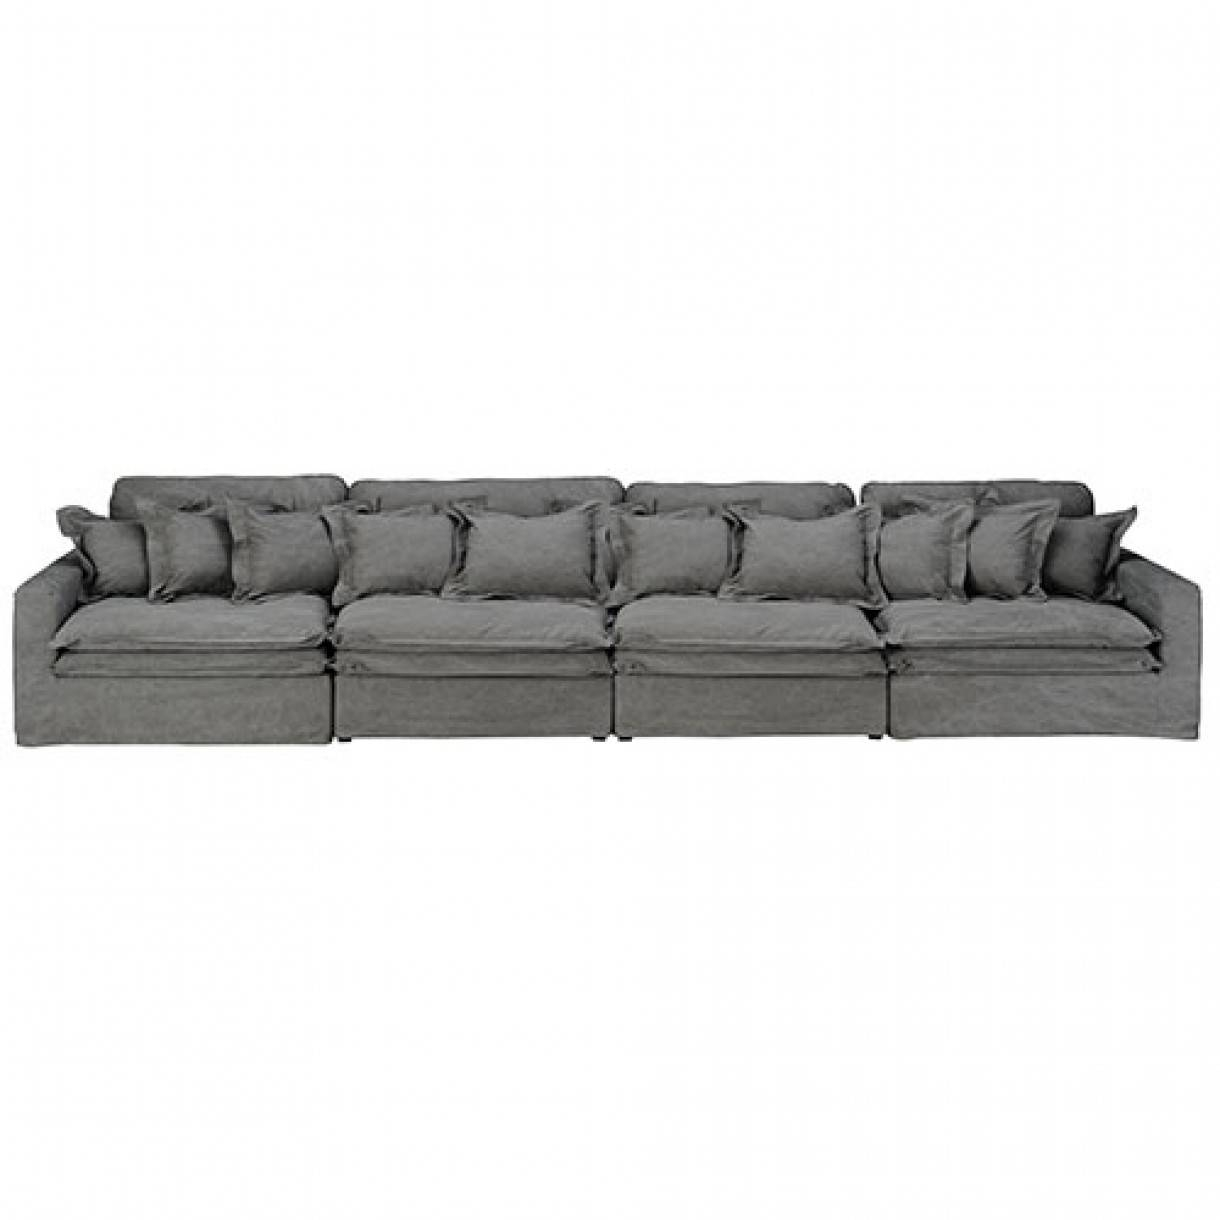 Buy Fabric Lounges Online | Upholstery | Early Settler Furniture pertaining to Large 4 Seater Sofas (Image 3 of 30)